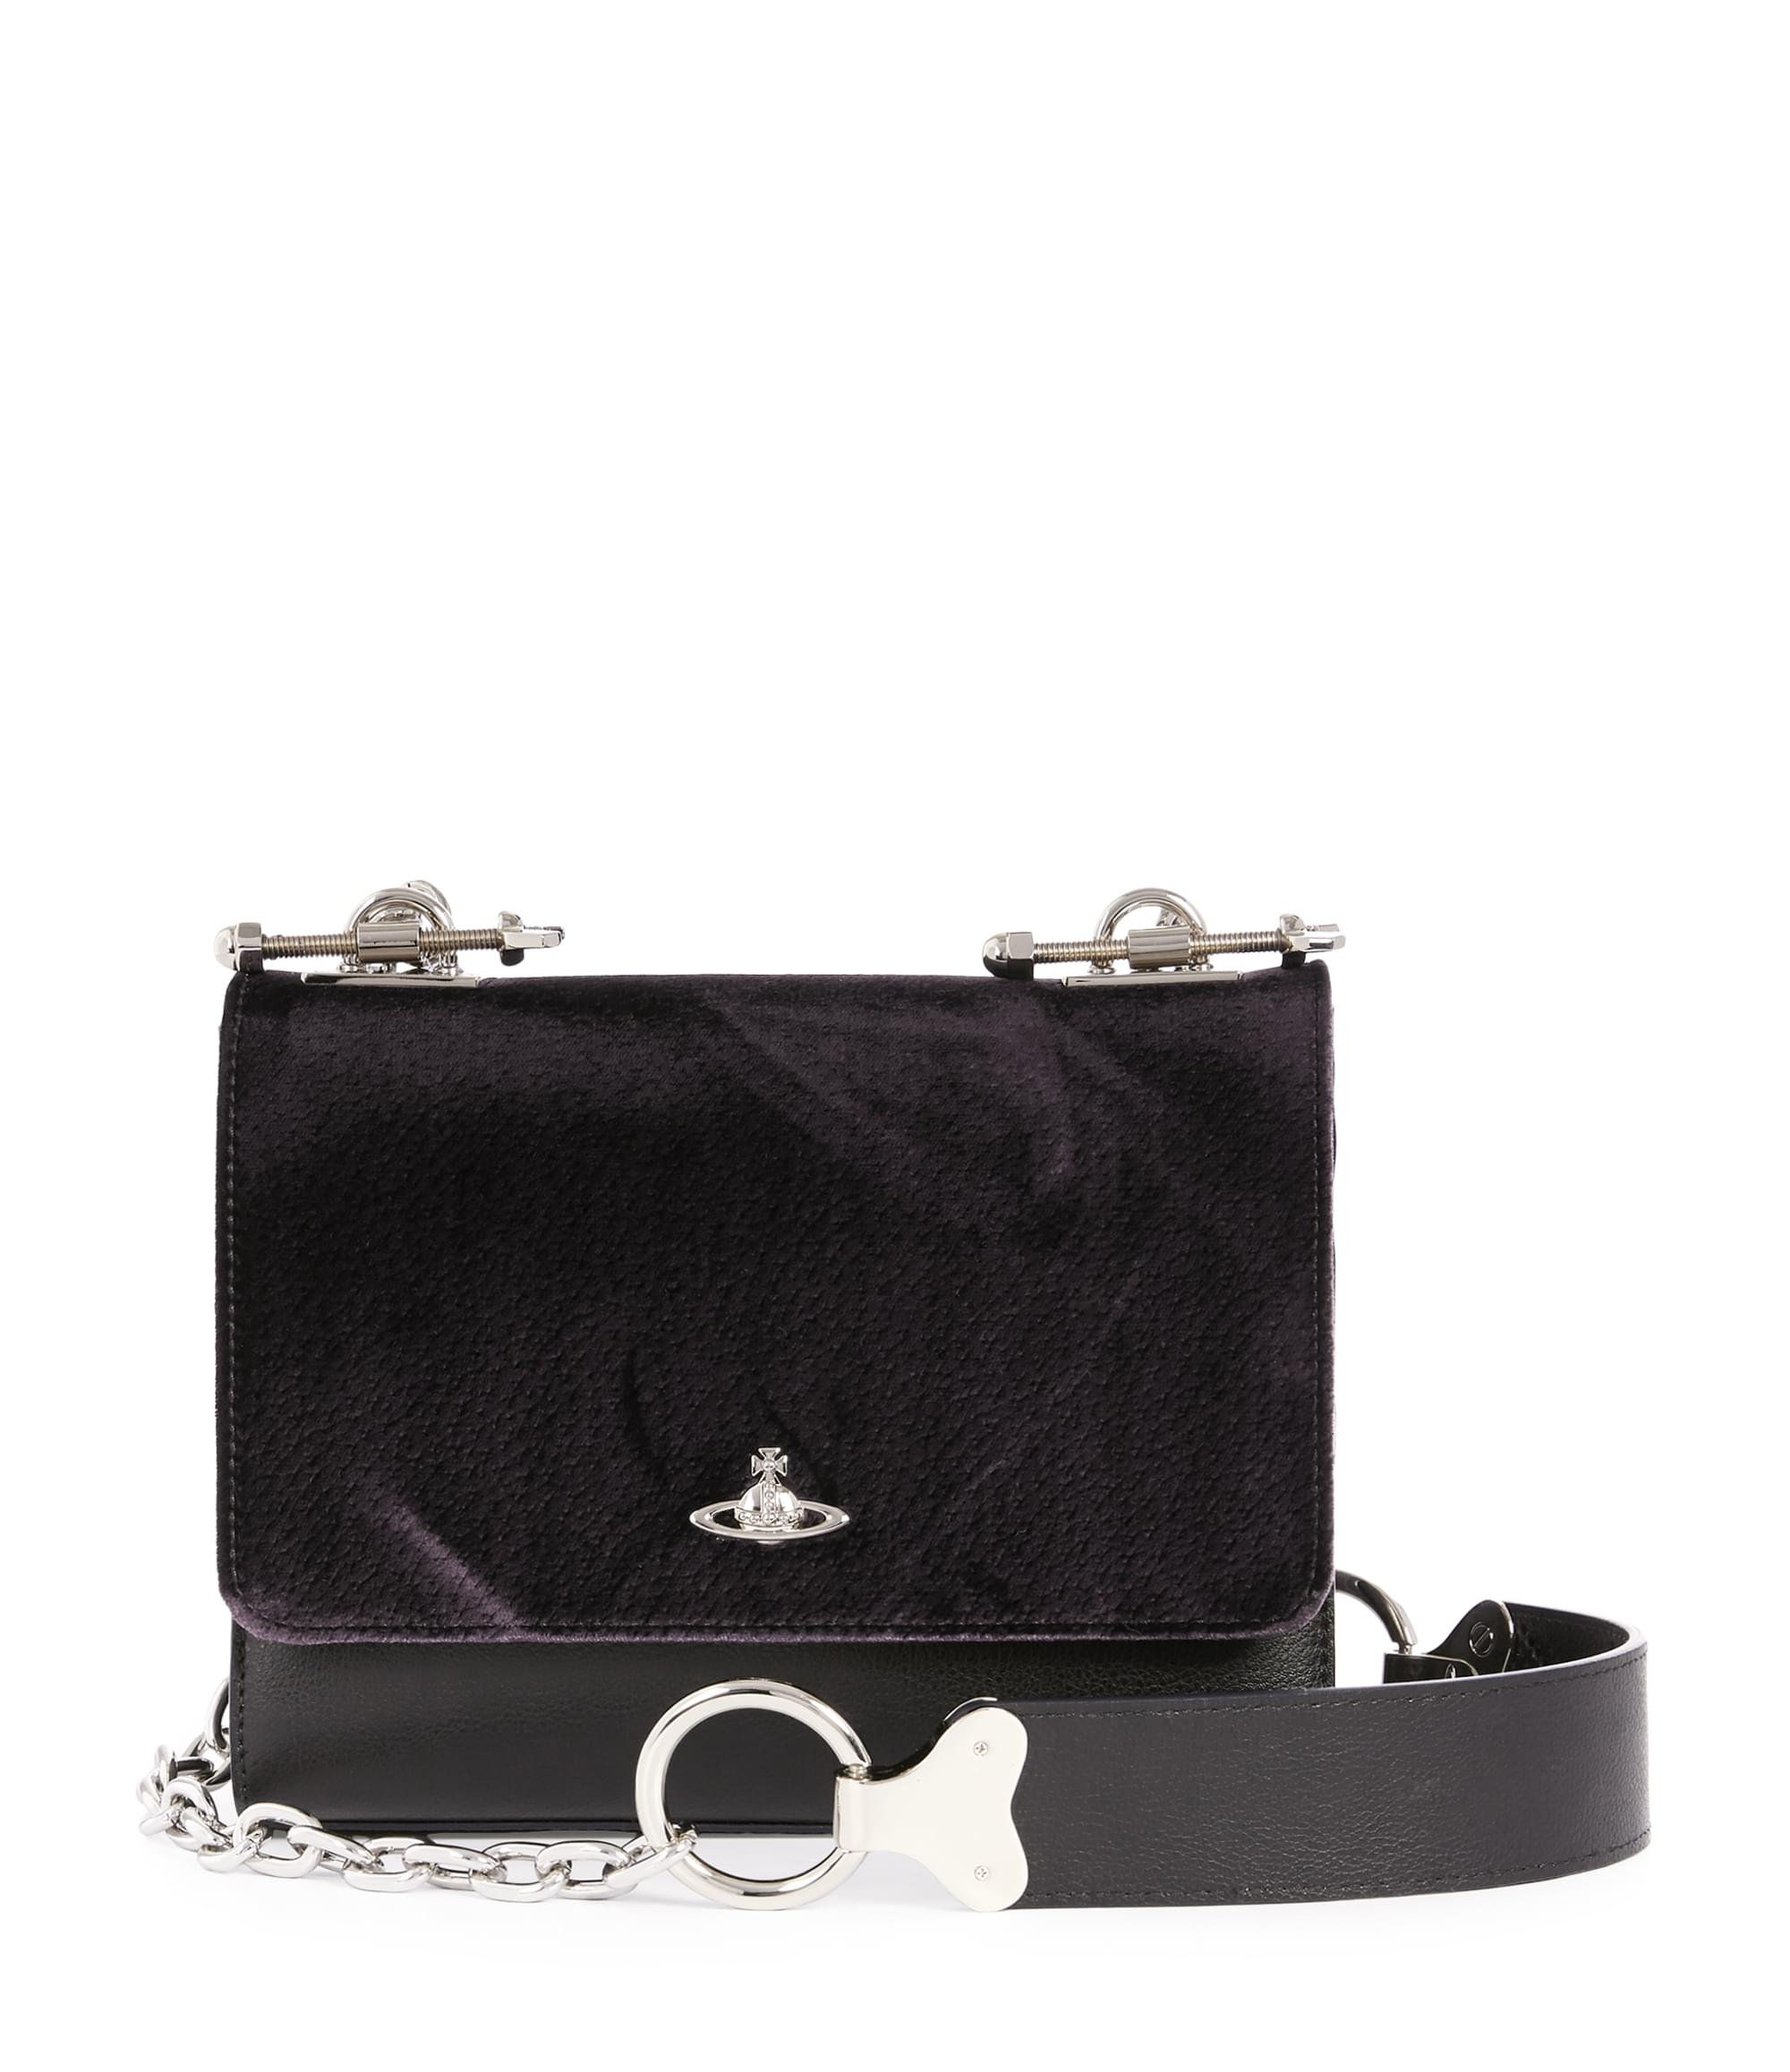 Vivienne Westwood Small Sheffield Crossbody 131240 Black